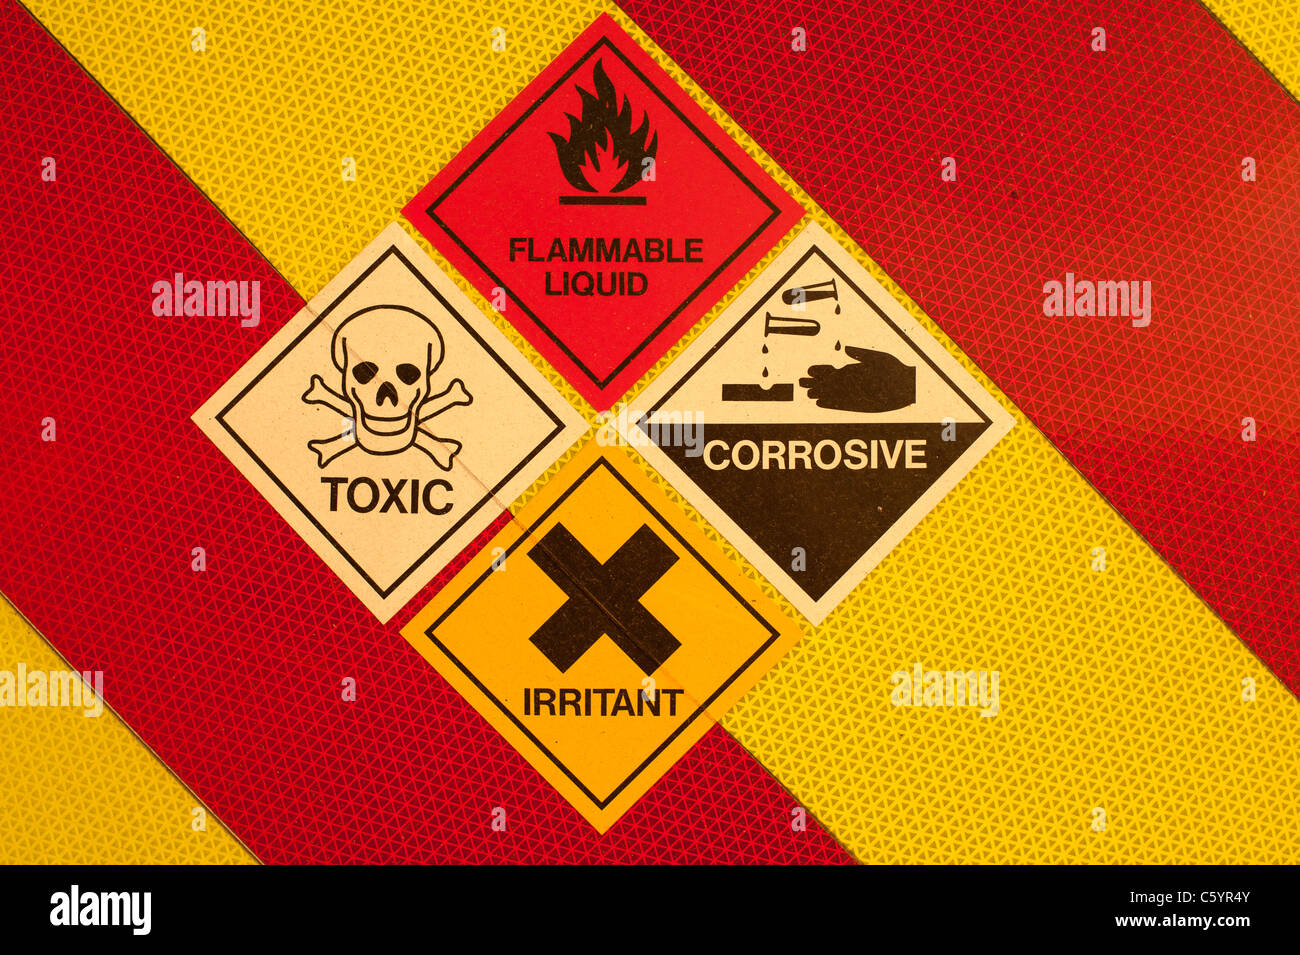 Flammable Liquid Stock Photos Flammable Liquid Stock Images Alamy